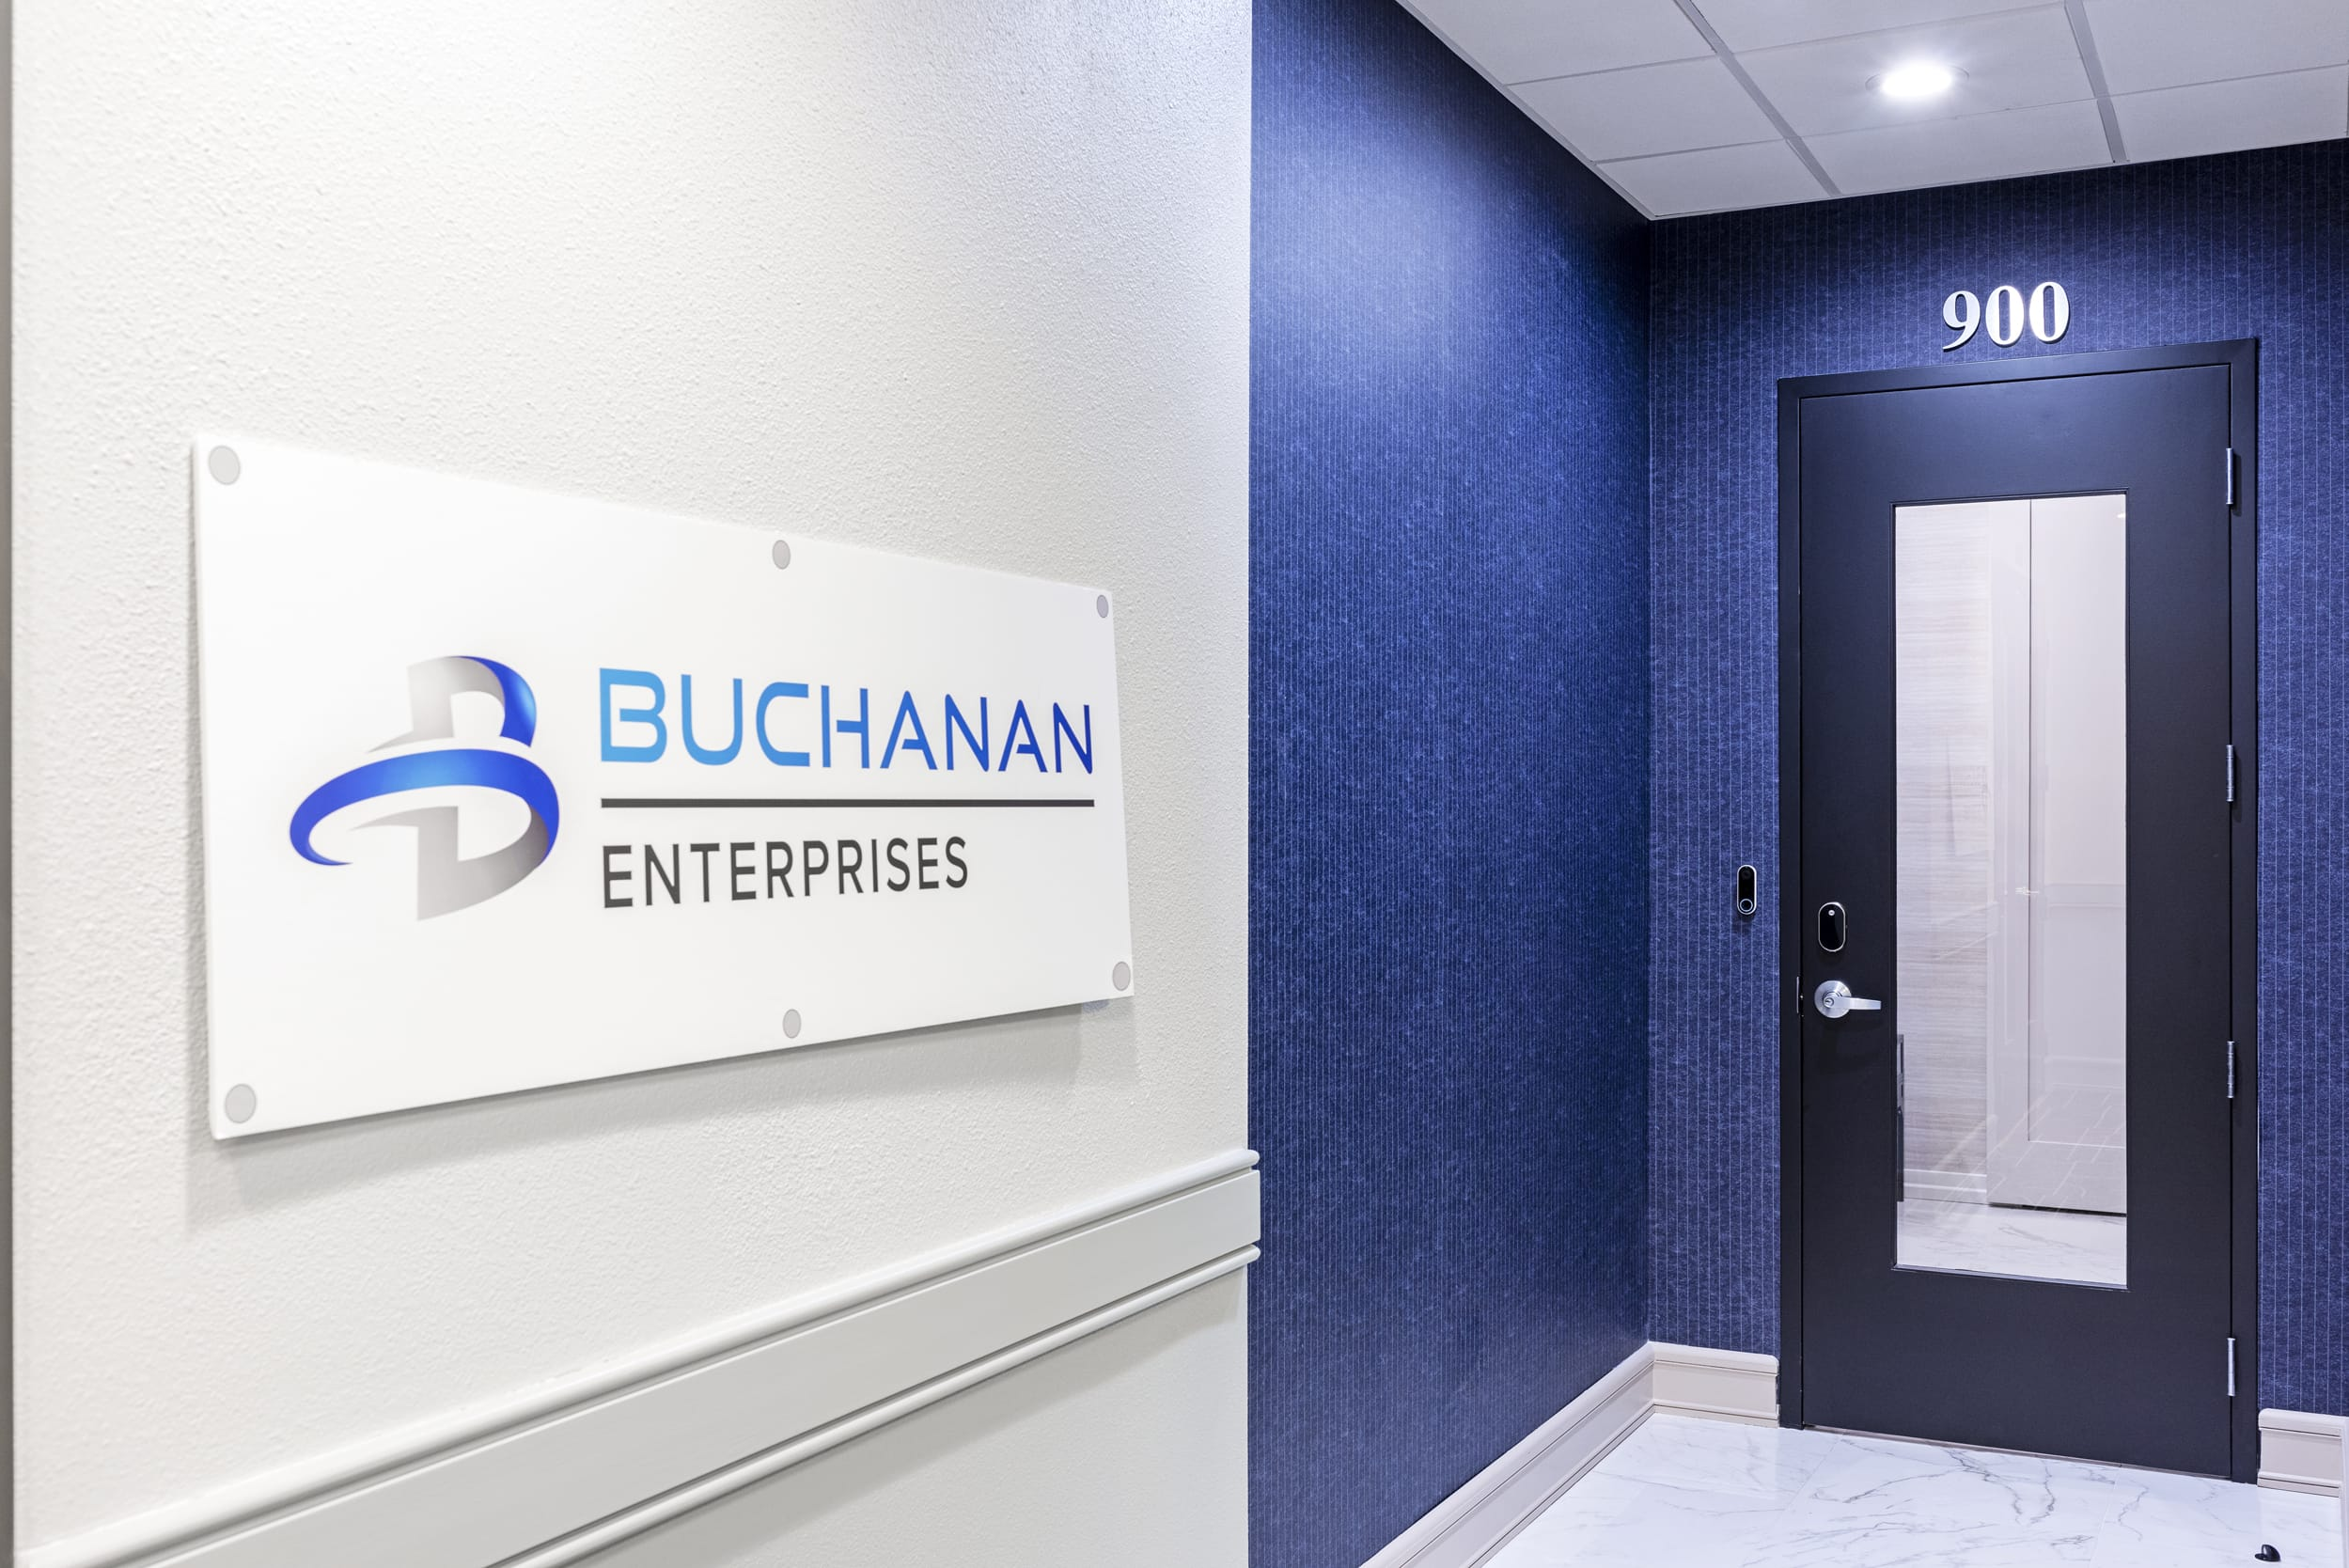 Buchanan Enterpises Sign Blue Pin Striped Wall Paper Blue Framed Door With Glass Panel